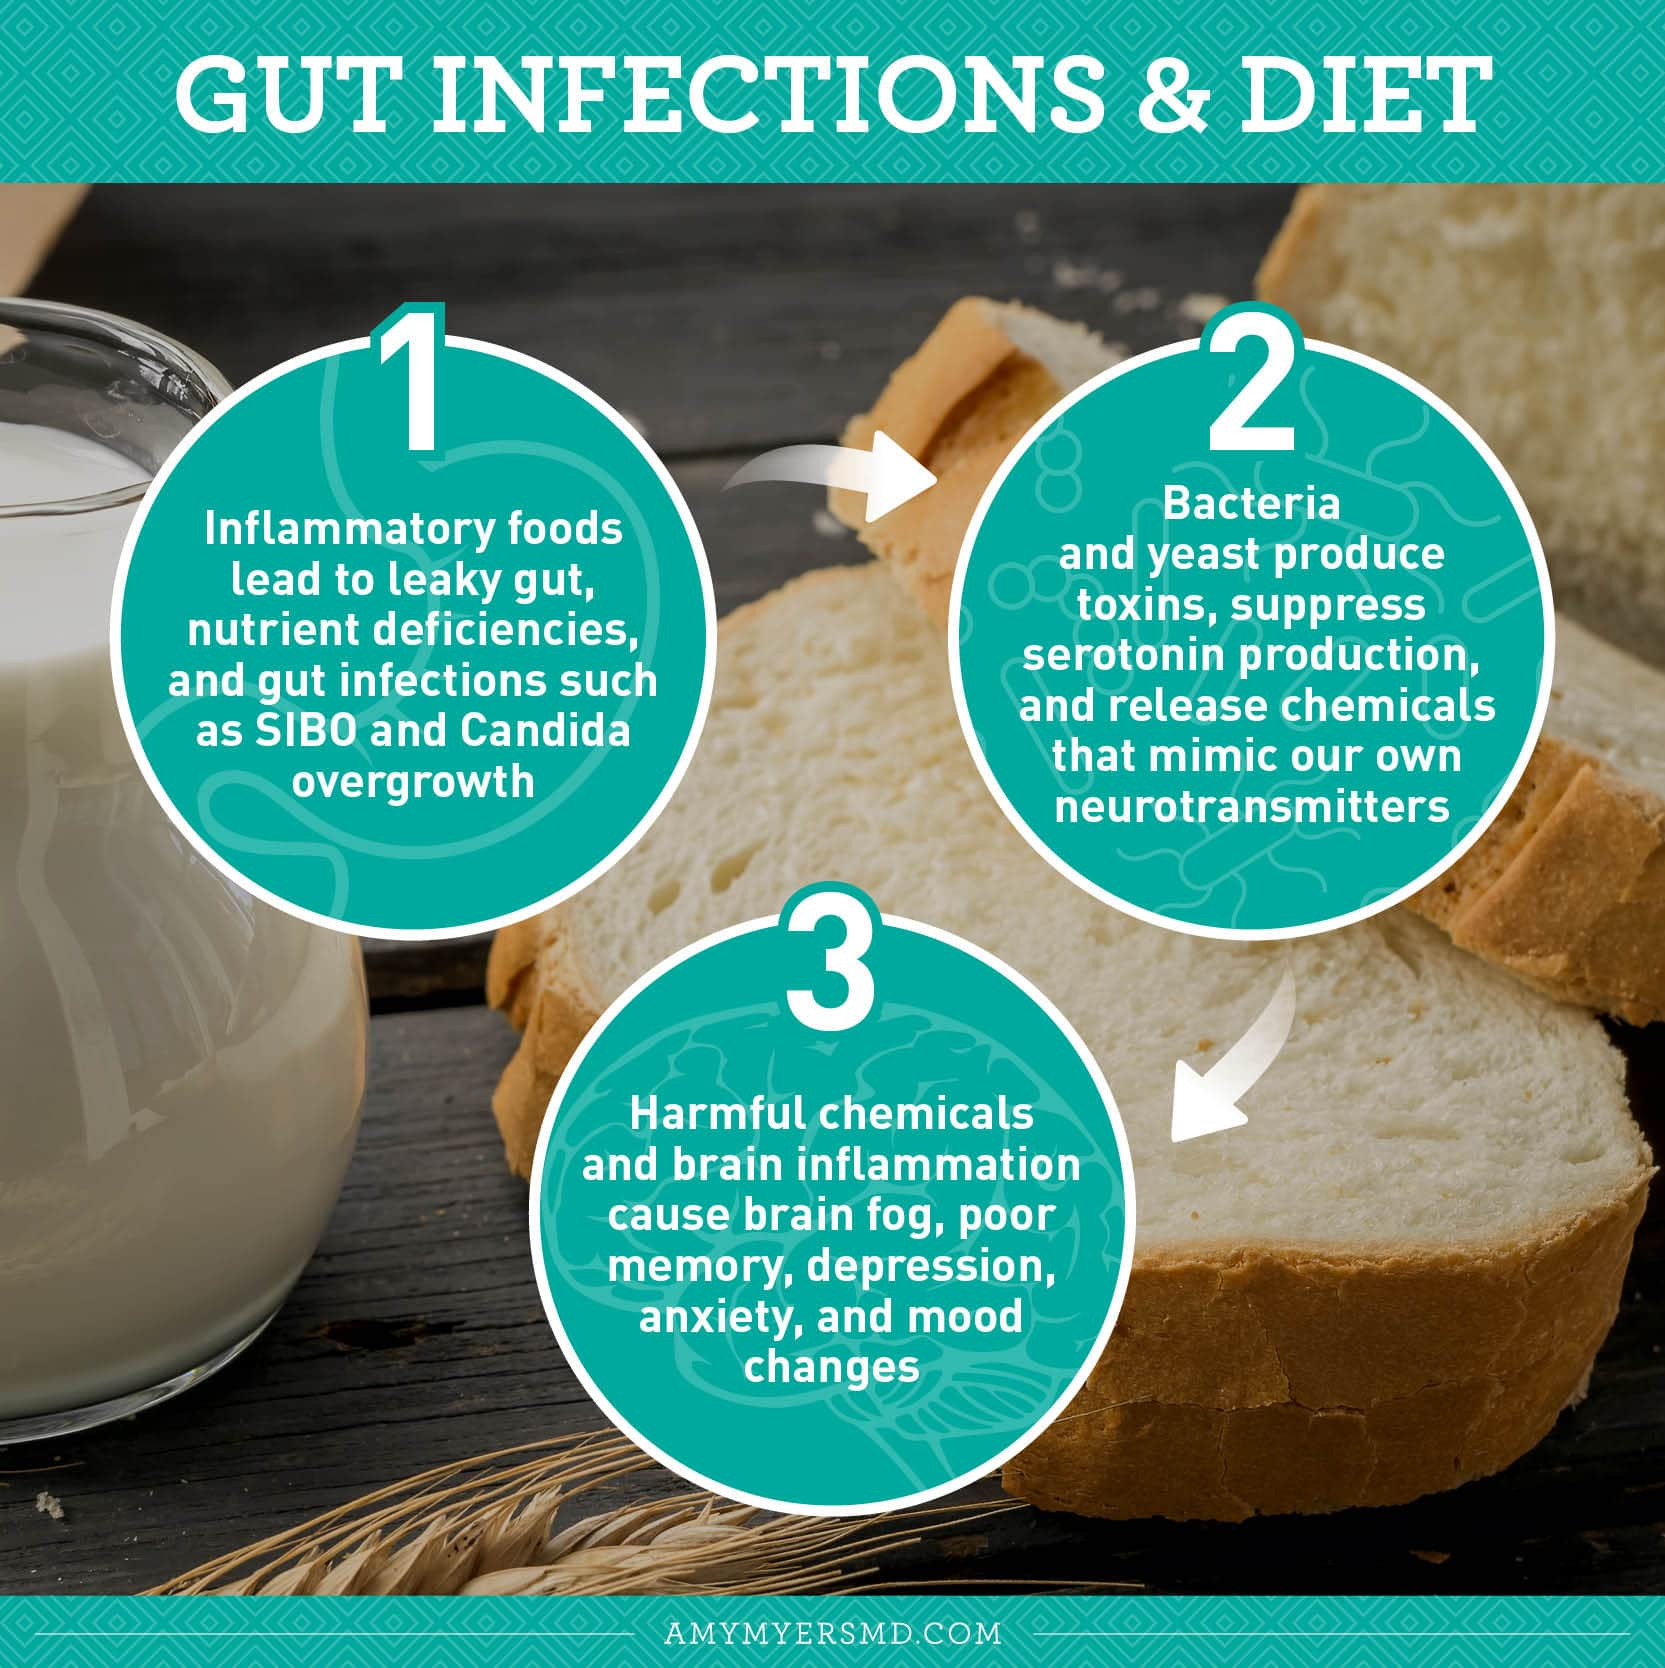 Gut Infections & Diet - Infographic - Amy Myers MD